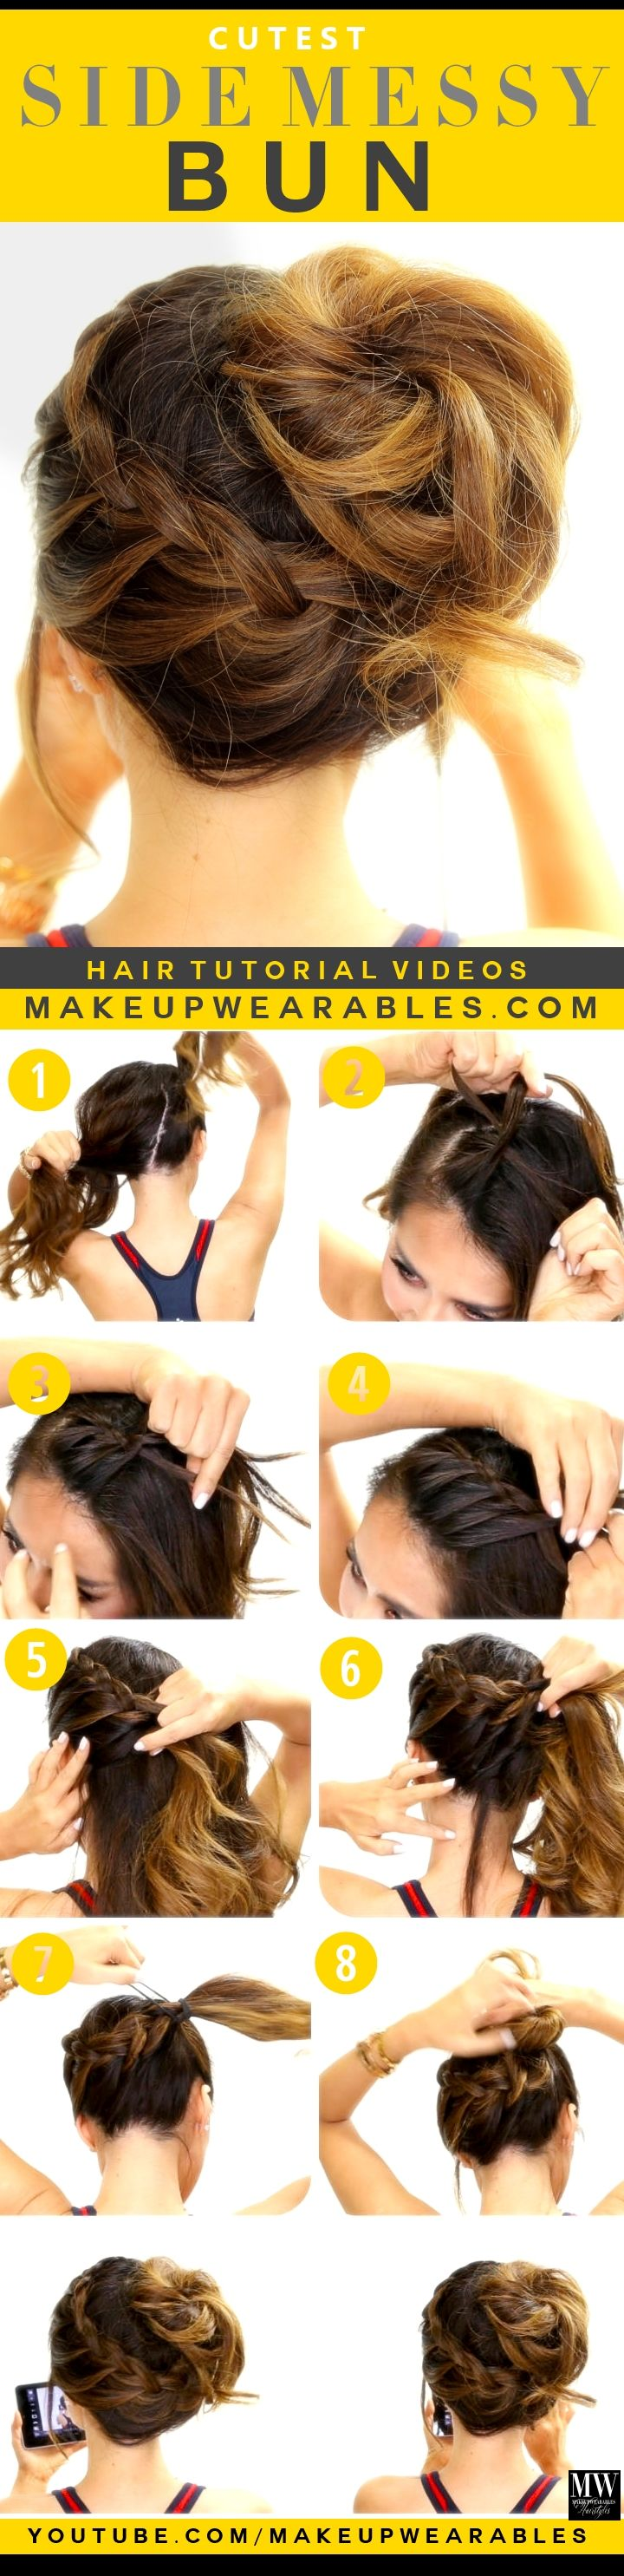 How to do a cute braided messy bun on yourself braid updo